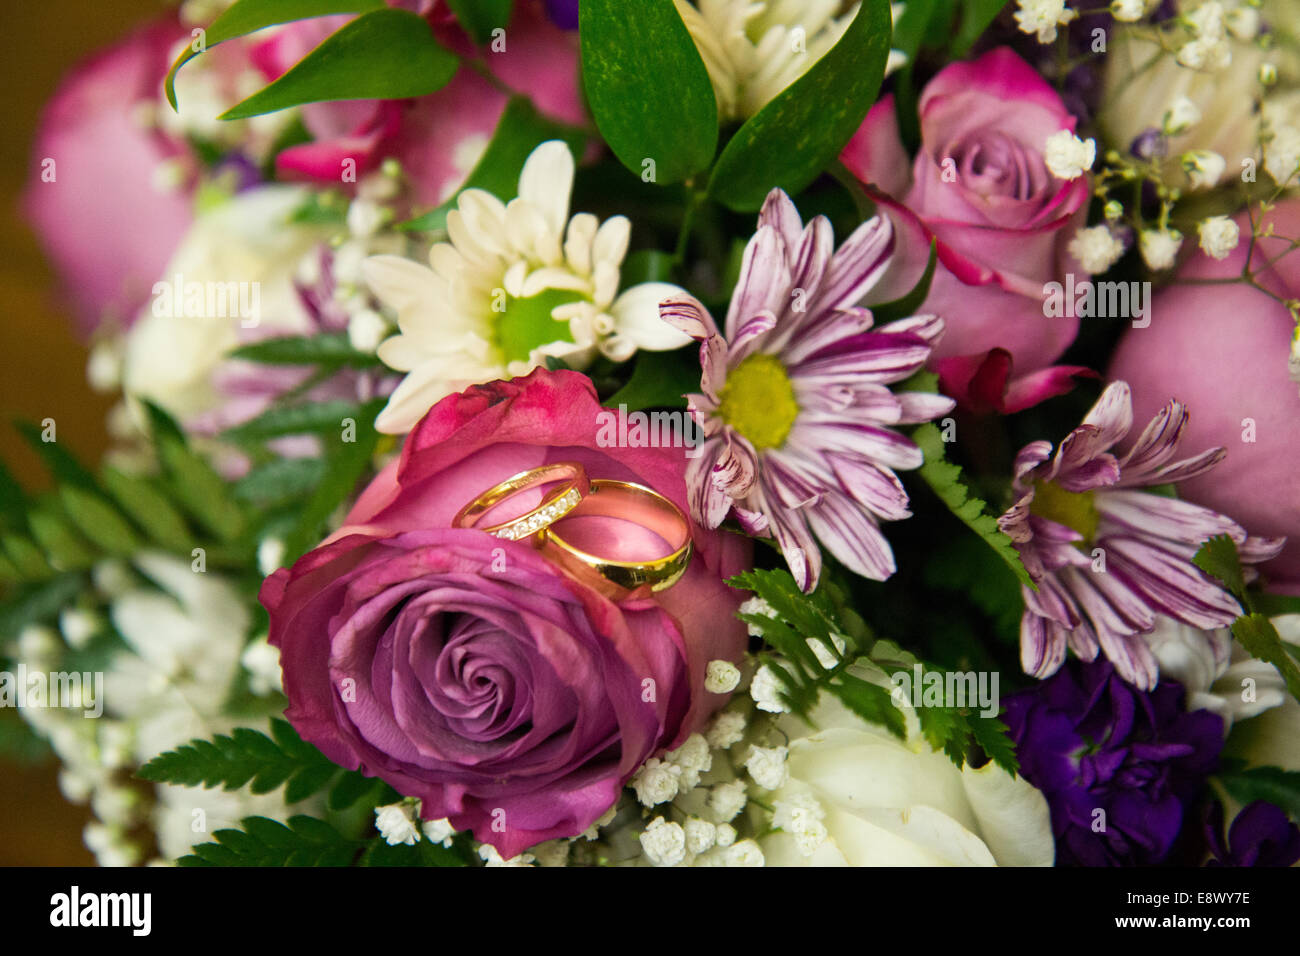 Wedding flowers pink and white with wedding rings - Stock Image